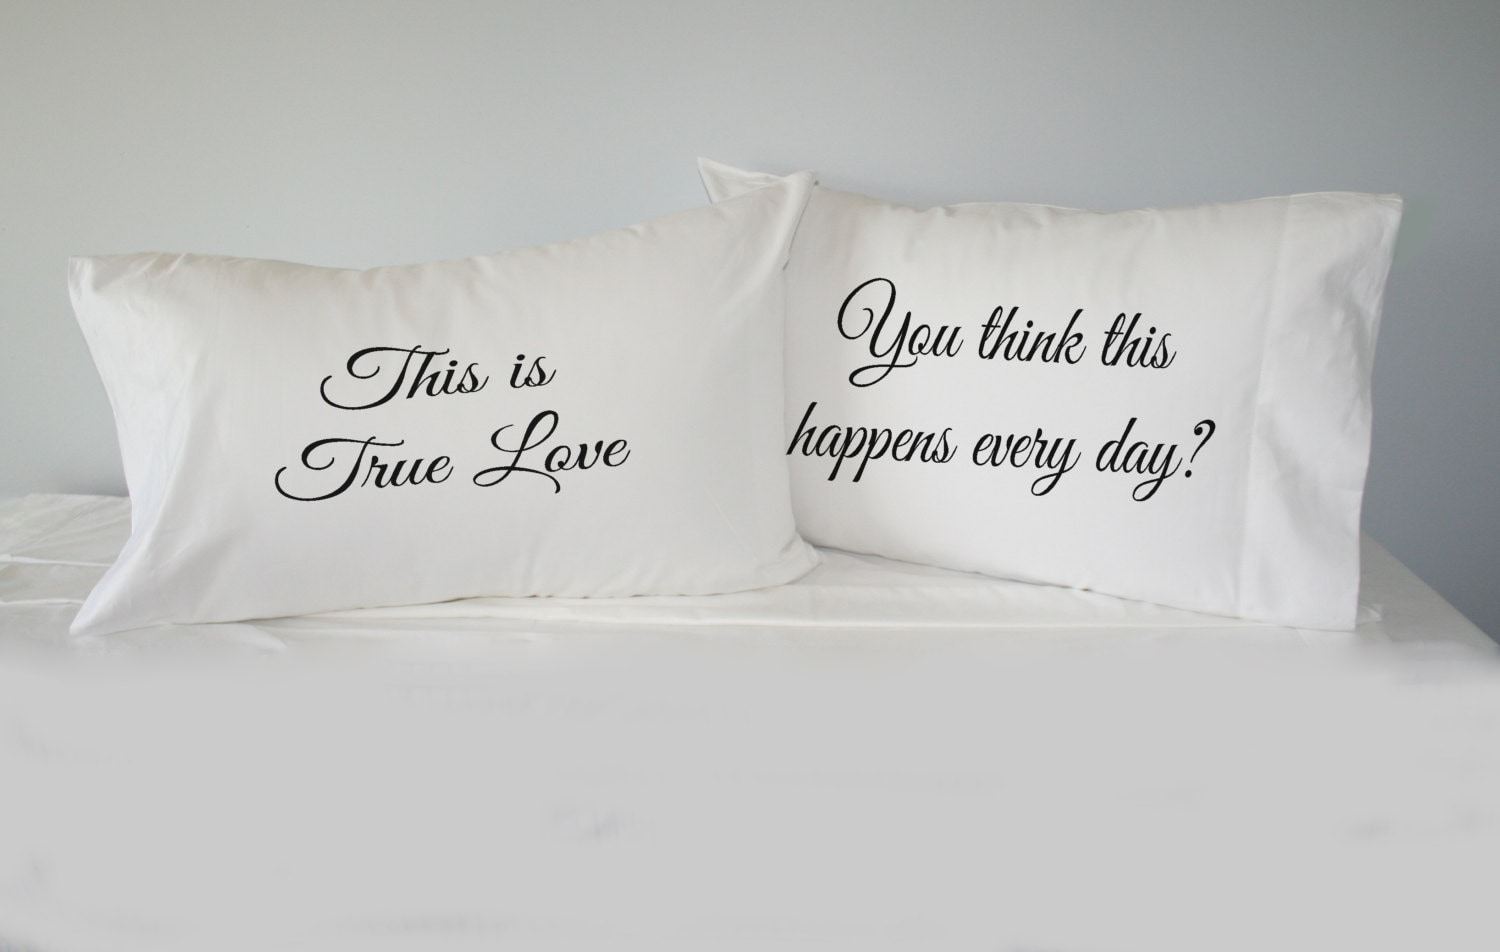 The Princess Bride Pillowcase Set Gift For Couples Pillow